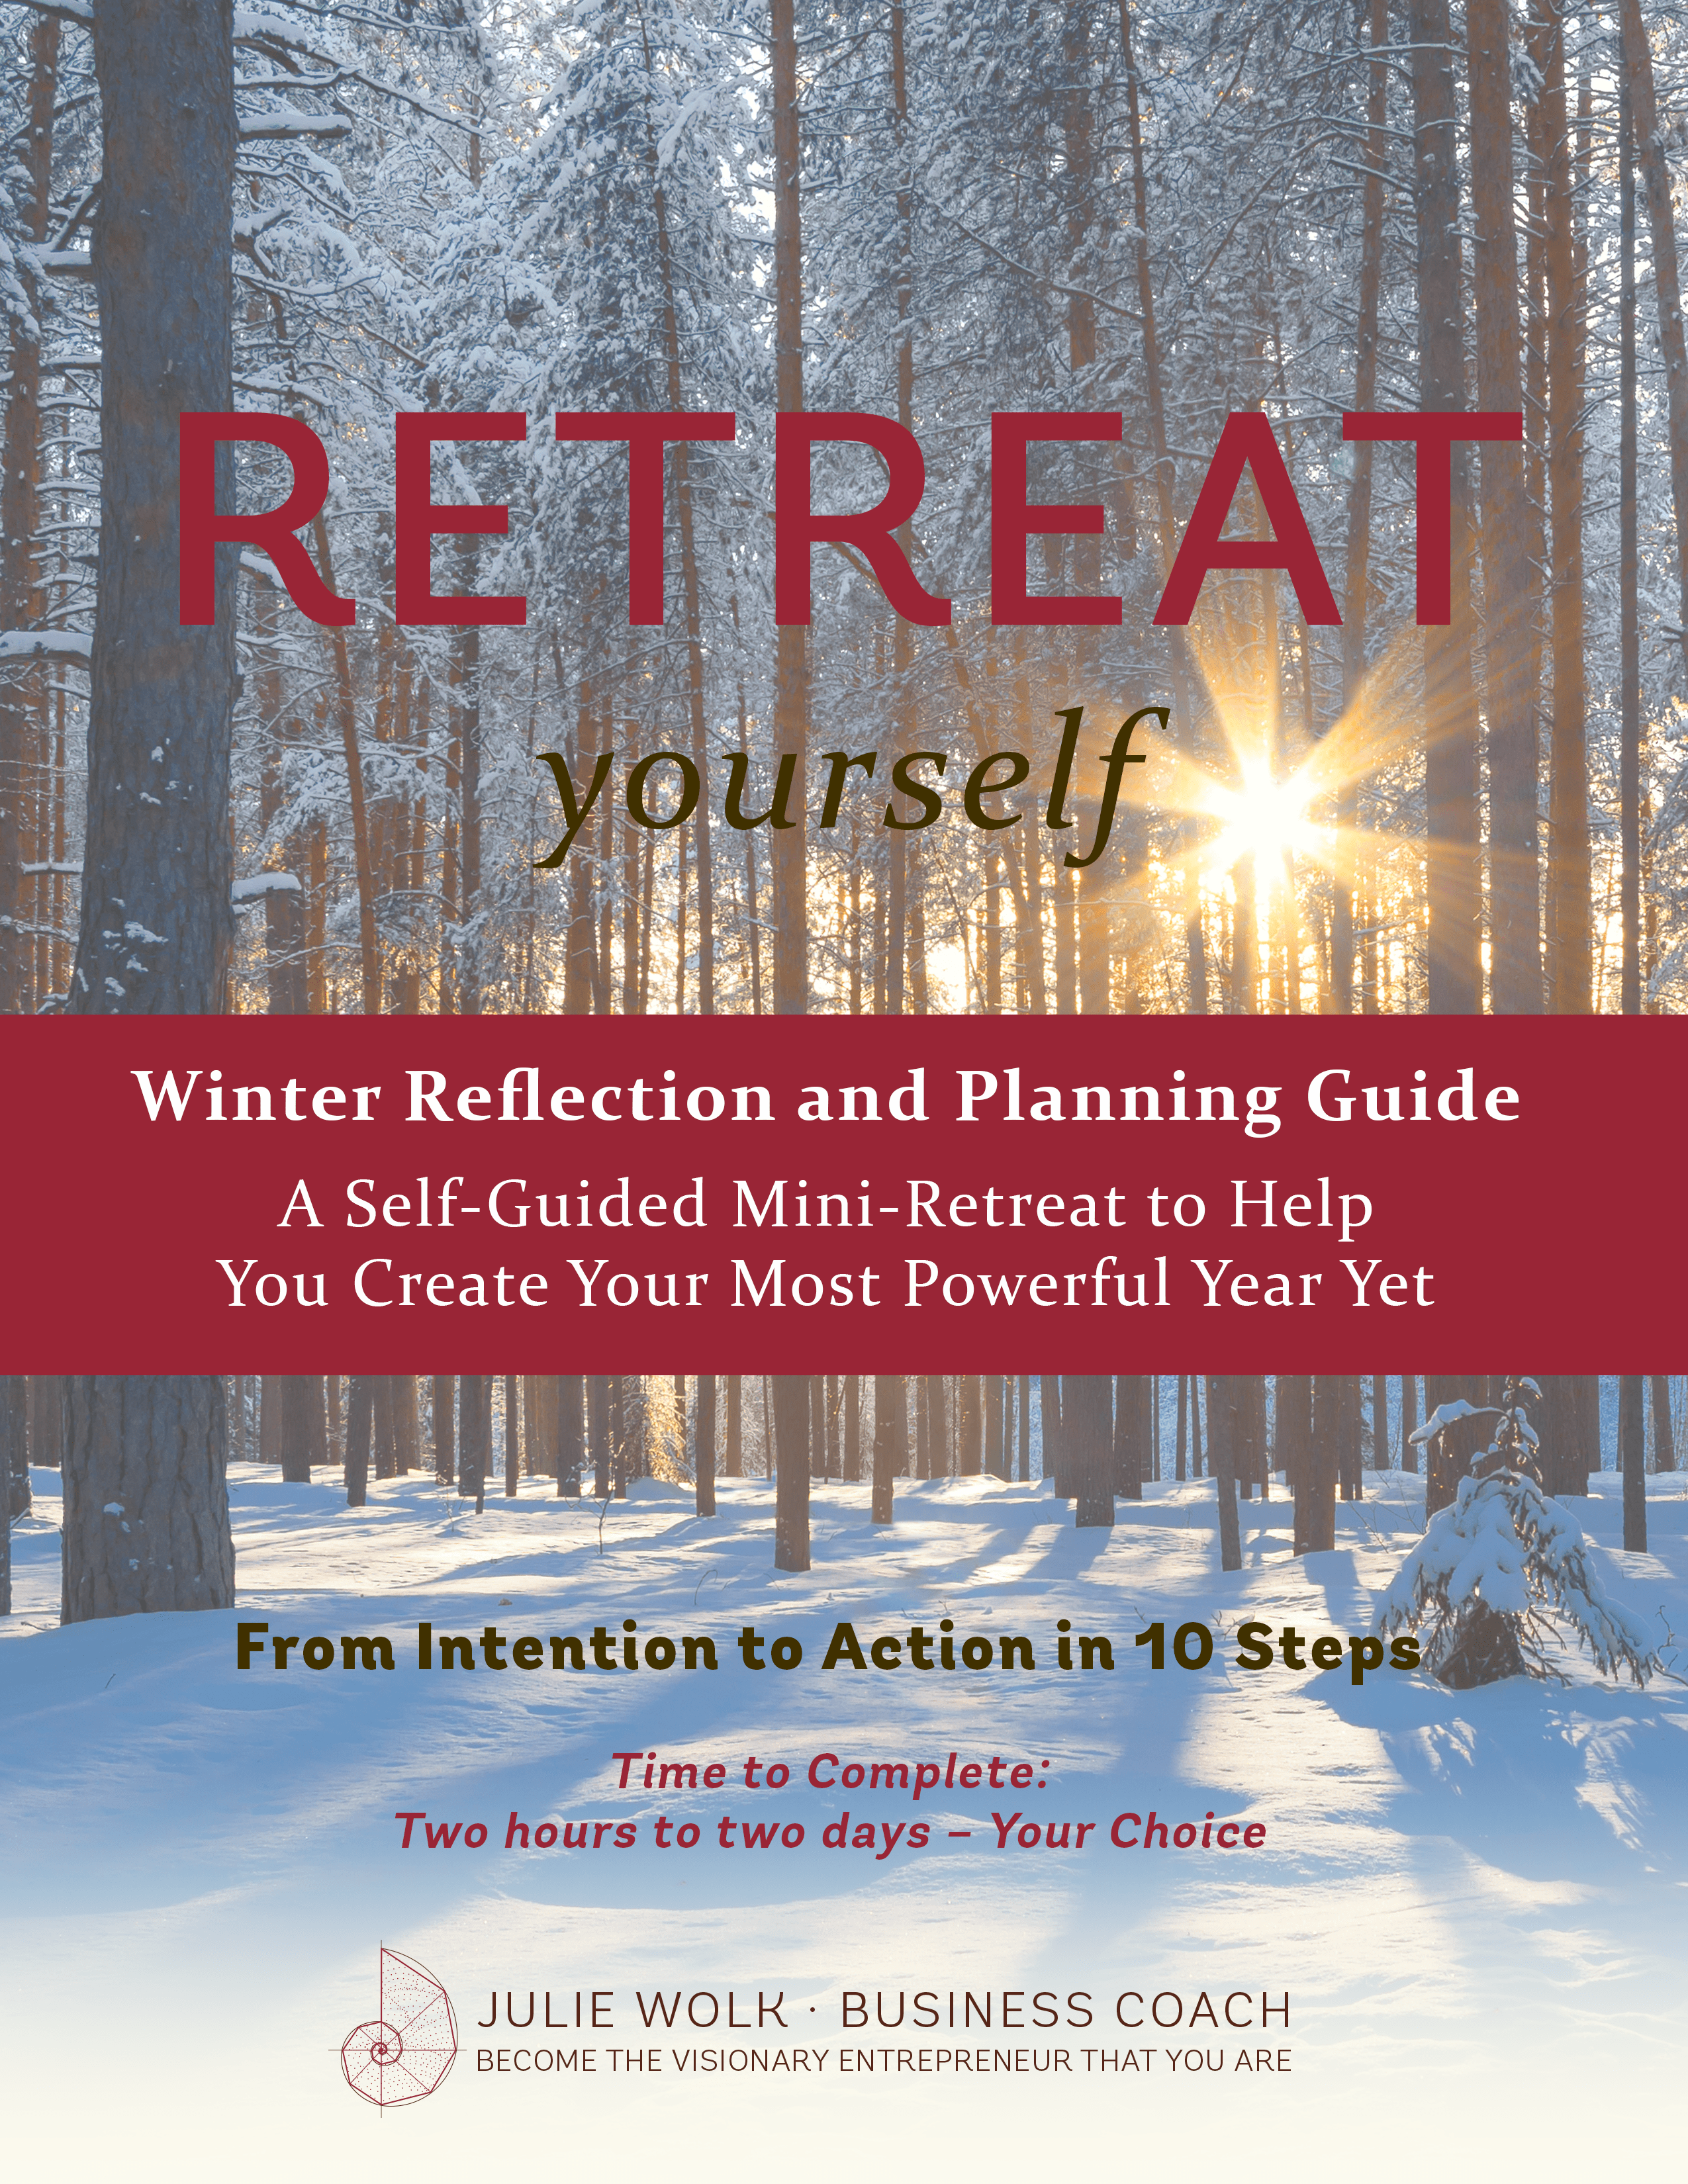 Retreat Yourself COVER IMAGE FINAL